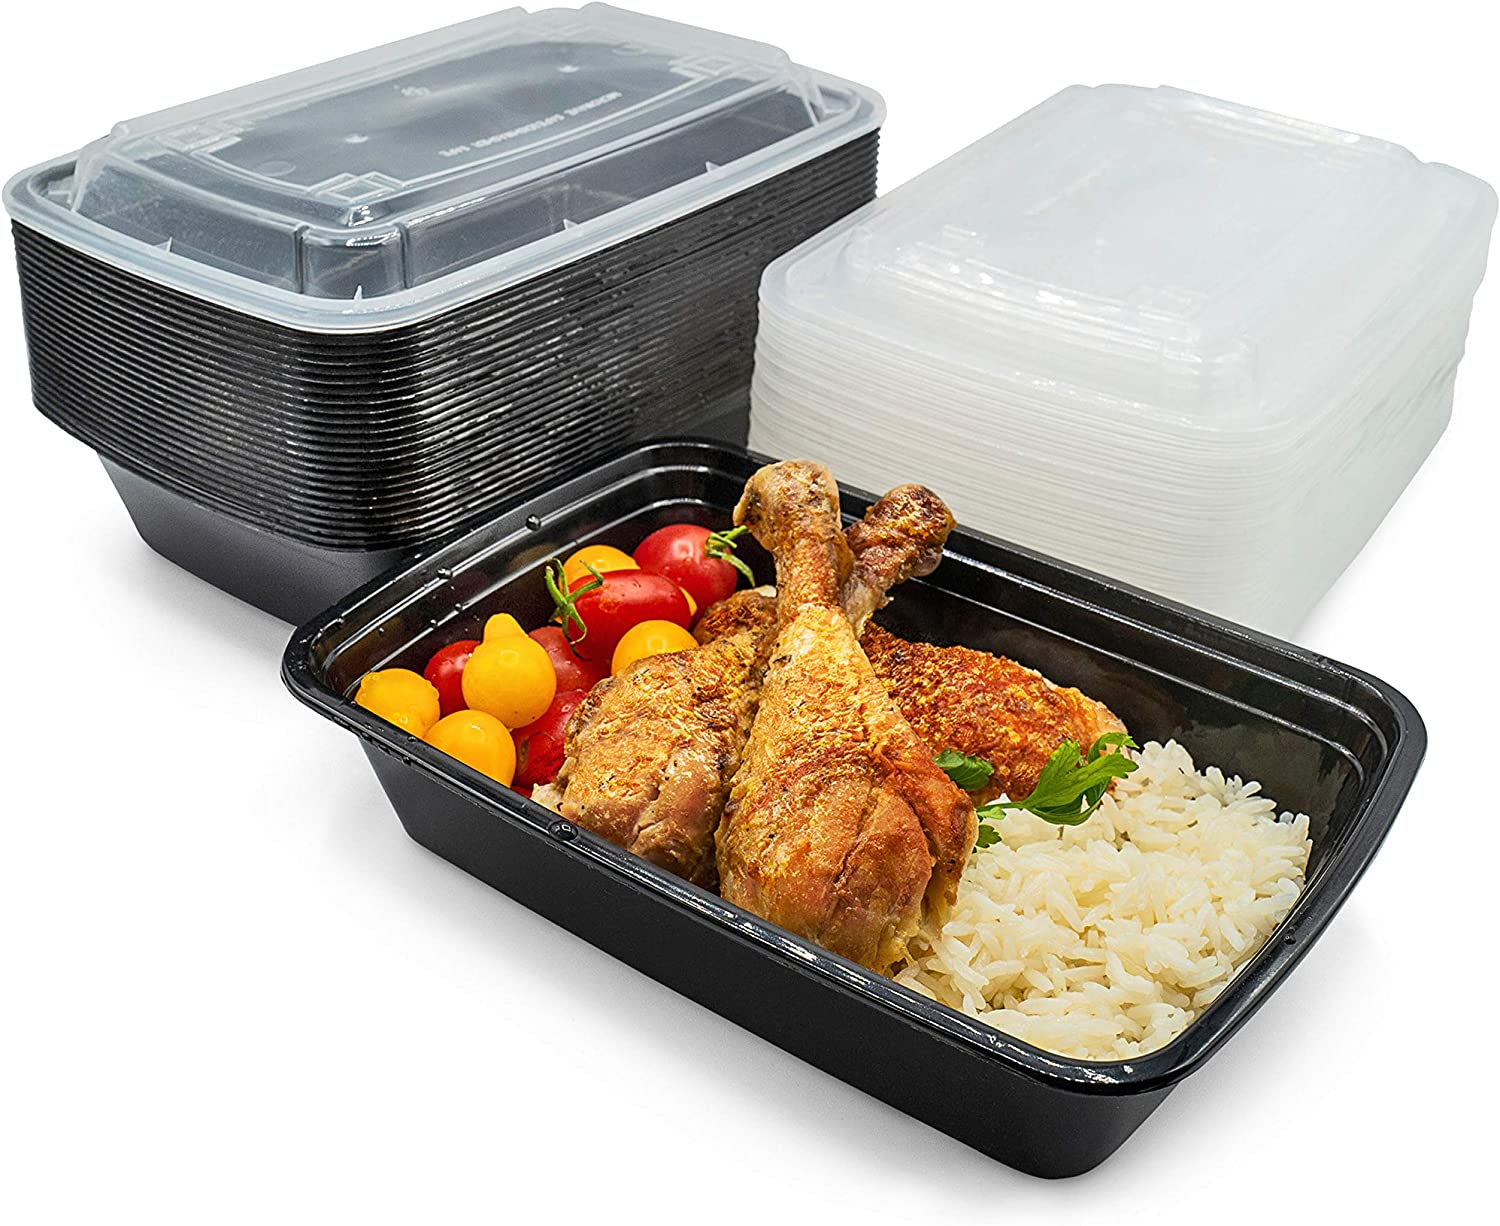 [50 Pack - 28 oz - 1 Compartment] Meal Prep Containers With Snap Tight Lids - Non-Spill Food Storage Reusable Stackable Freezer Microwavable & Dishwasher Safe Lunch Boxes - BPA-Free Heavy Duty Plastic